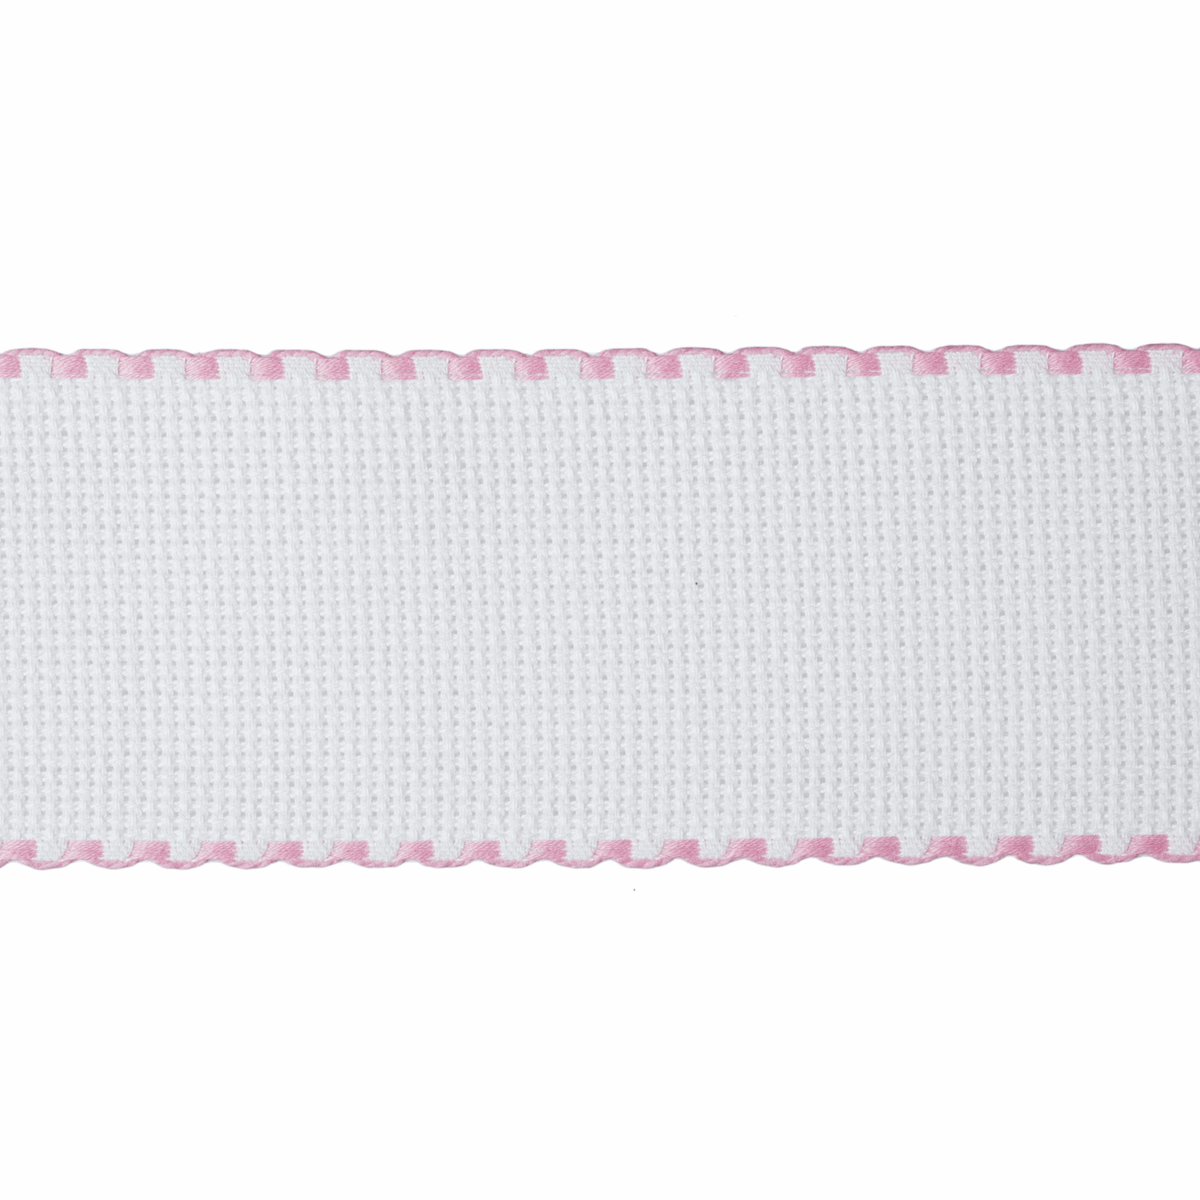 Picture of Needlecraft Fabric: Aida Band: 16 Count: 8m x 50mm: White/Pink Edging